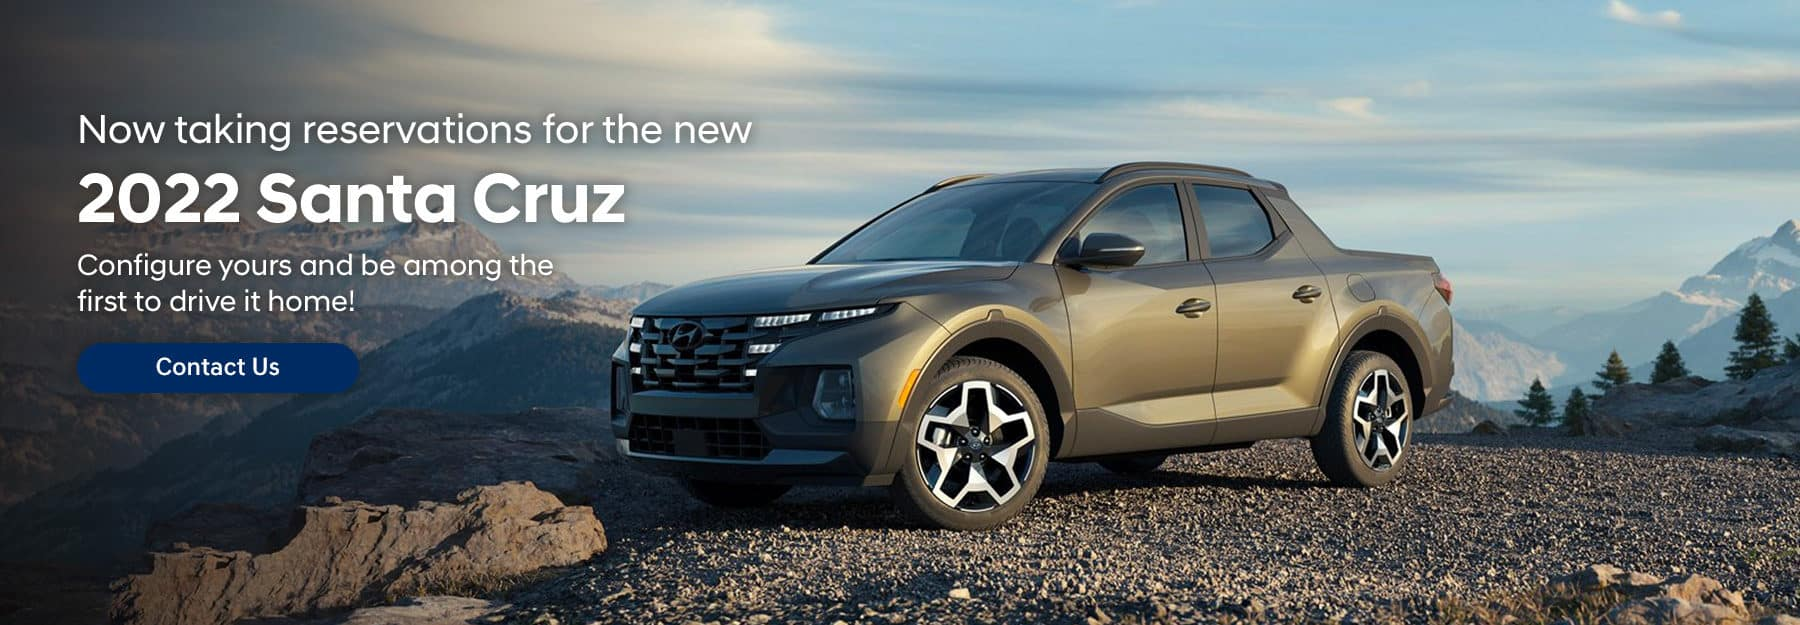 Now Taking Reservations for the new 2022 Santa Cruz Subtext: Configure yours and be among the first to drive it home!